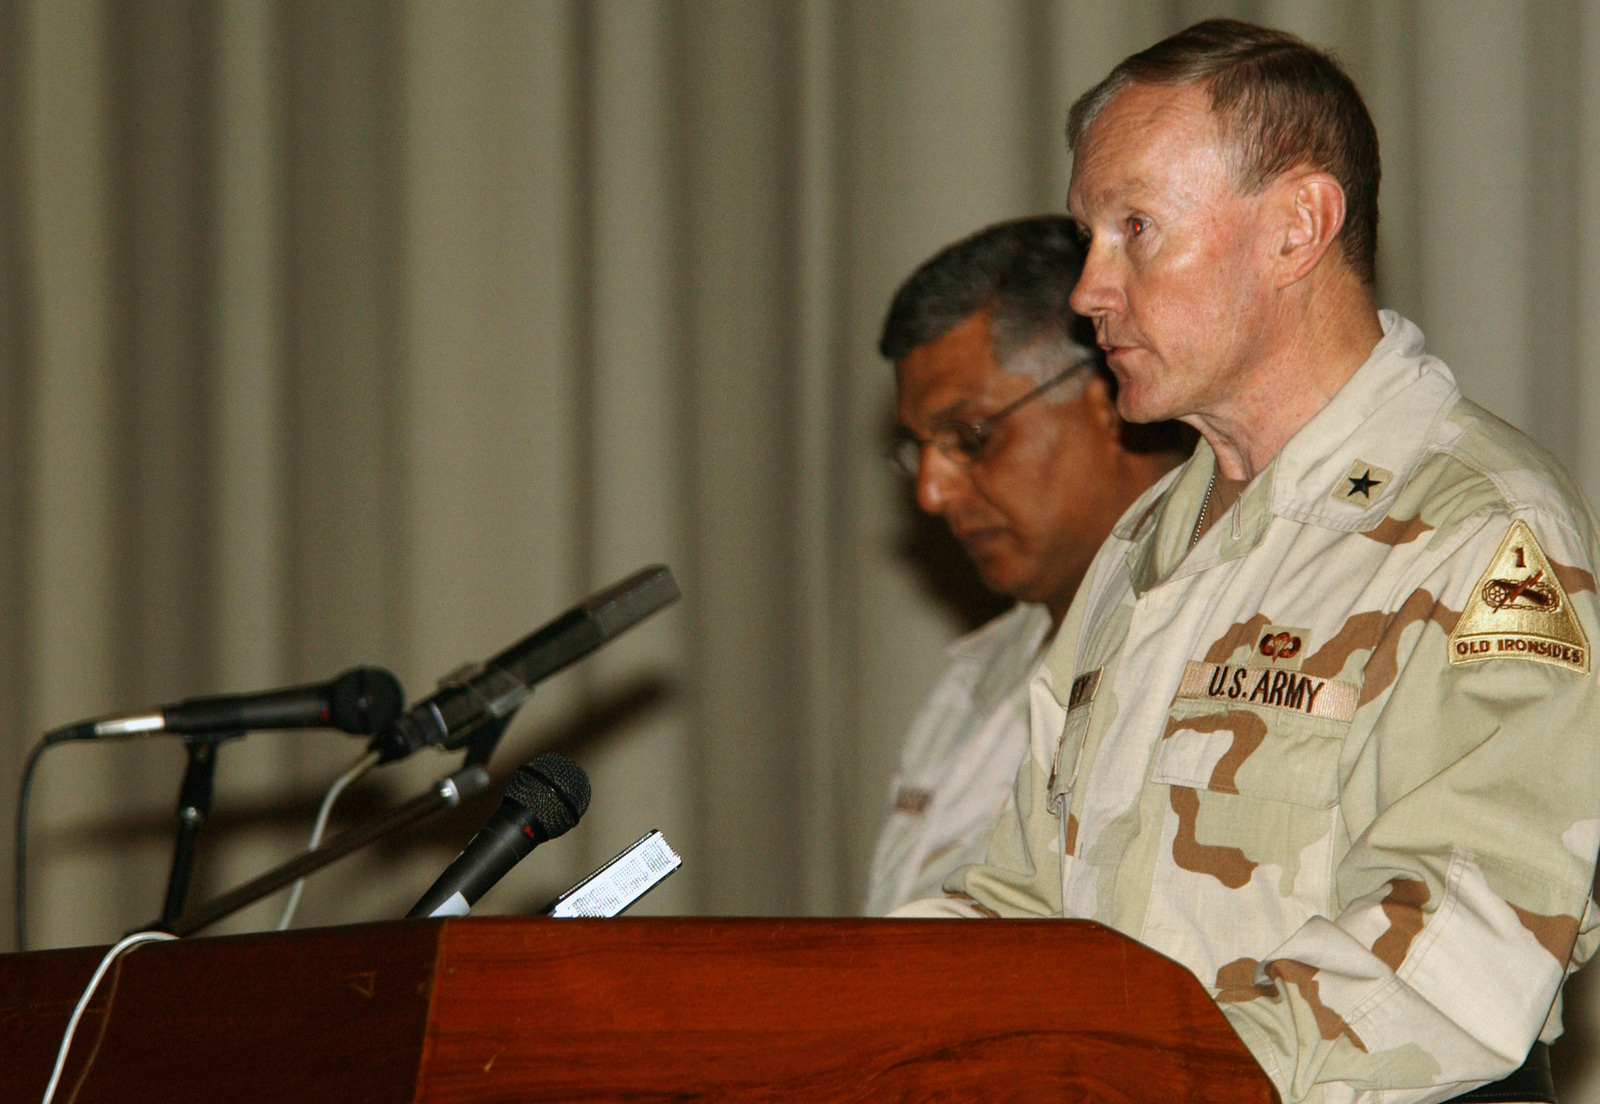 US Army (USA) Brigadier General (BGEN) Martin E. Dempsey, 1ST Armored Division (AD), gives a few remarks to the Iraqis who served unselfishly during previous wars in Iraq at a recognition ceremony held in the Convention Center in Baghdad, Iraq, during Operation IRAQI FREEDOM. They are being given recognition for past bravery to show they will be recognized for future bravery under the new Iraqi government. Since the end of major combat operations, the Iraqi Police Service (IPS), Facility Protection Service (FPS), and Iraqi Civil Defense Corps (ICDC) worked to hire, train, equip, and employ personnel throughout the city in a profession that often requires selfless service, sacrifice, and...